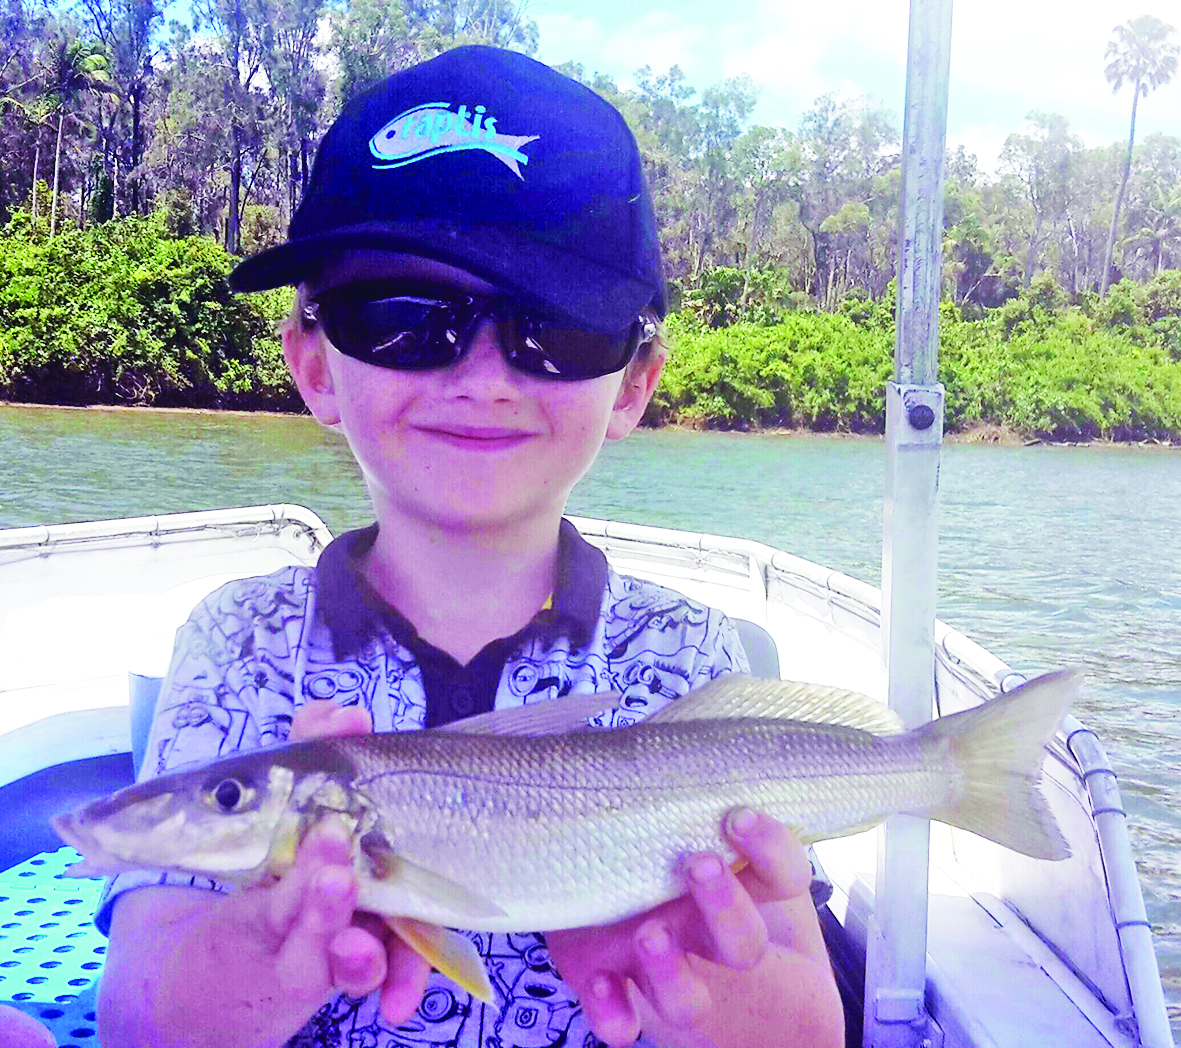 Young Brady with his first whiting, which was caught while trolling a small Pontoon21 lure.